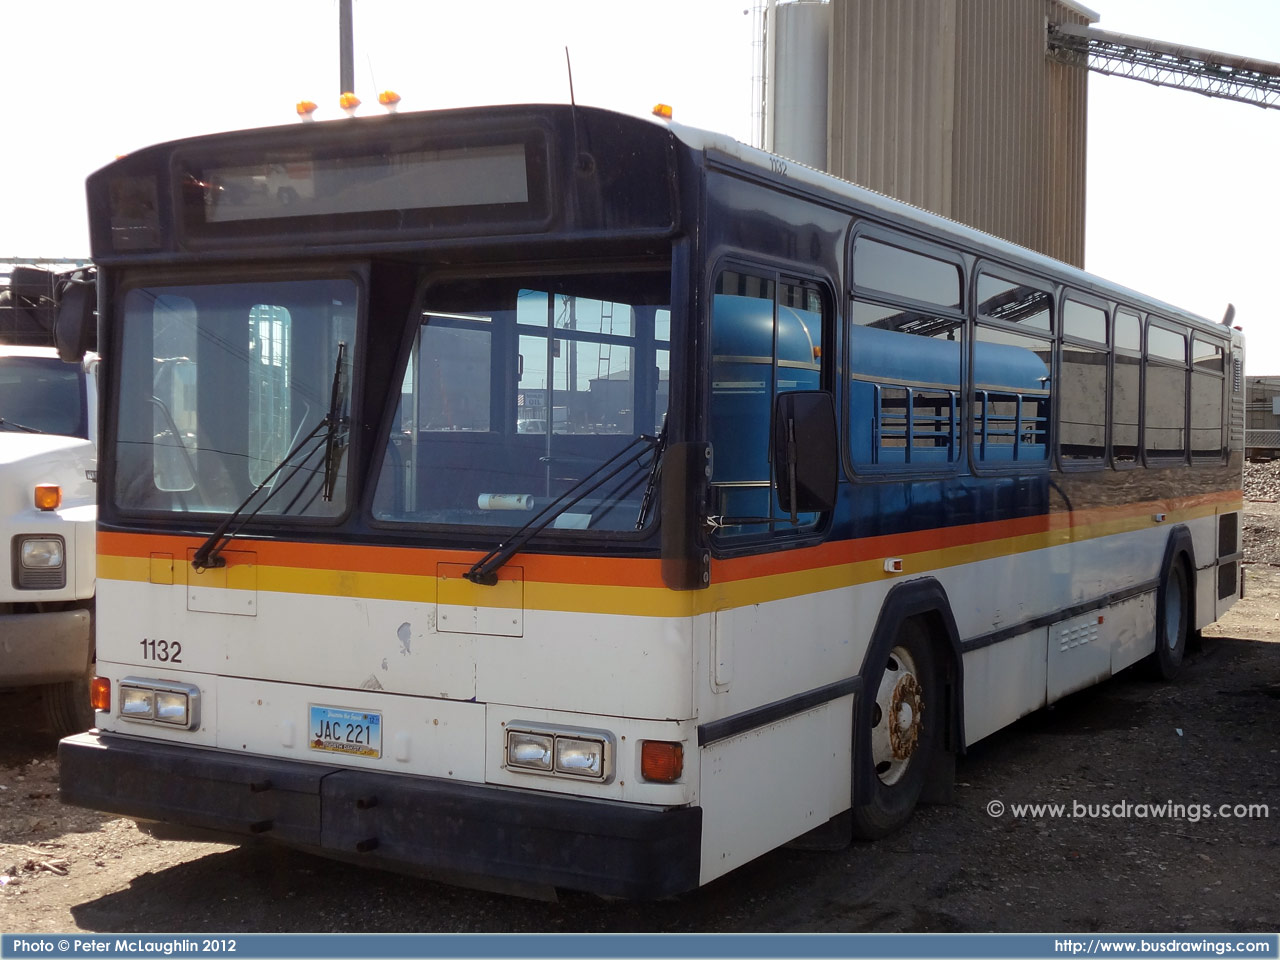 1992 gillig bus going through city in evansvilleindiana - 1 part 4